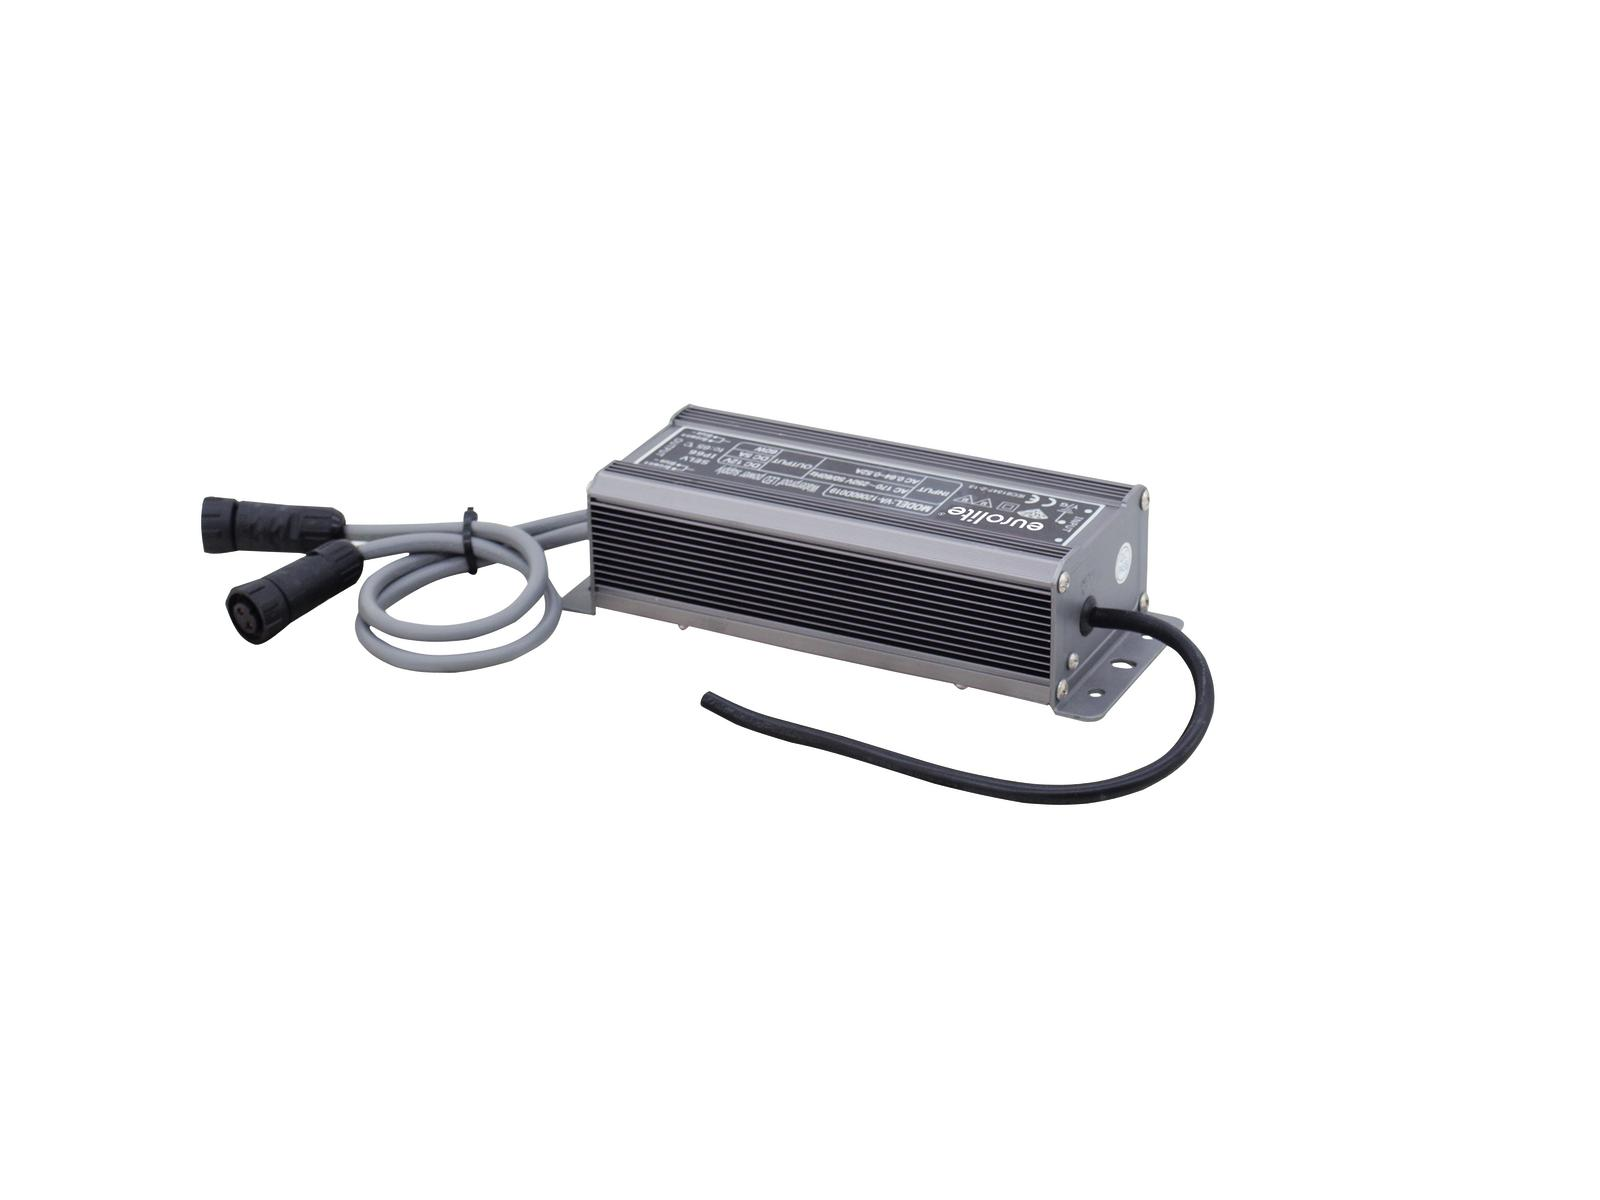 EUROLITE PSS-4 Power repeater